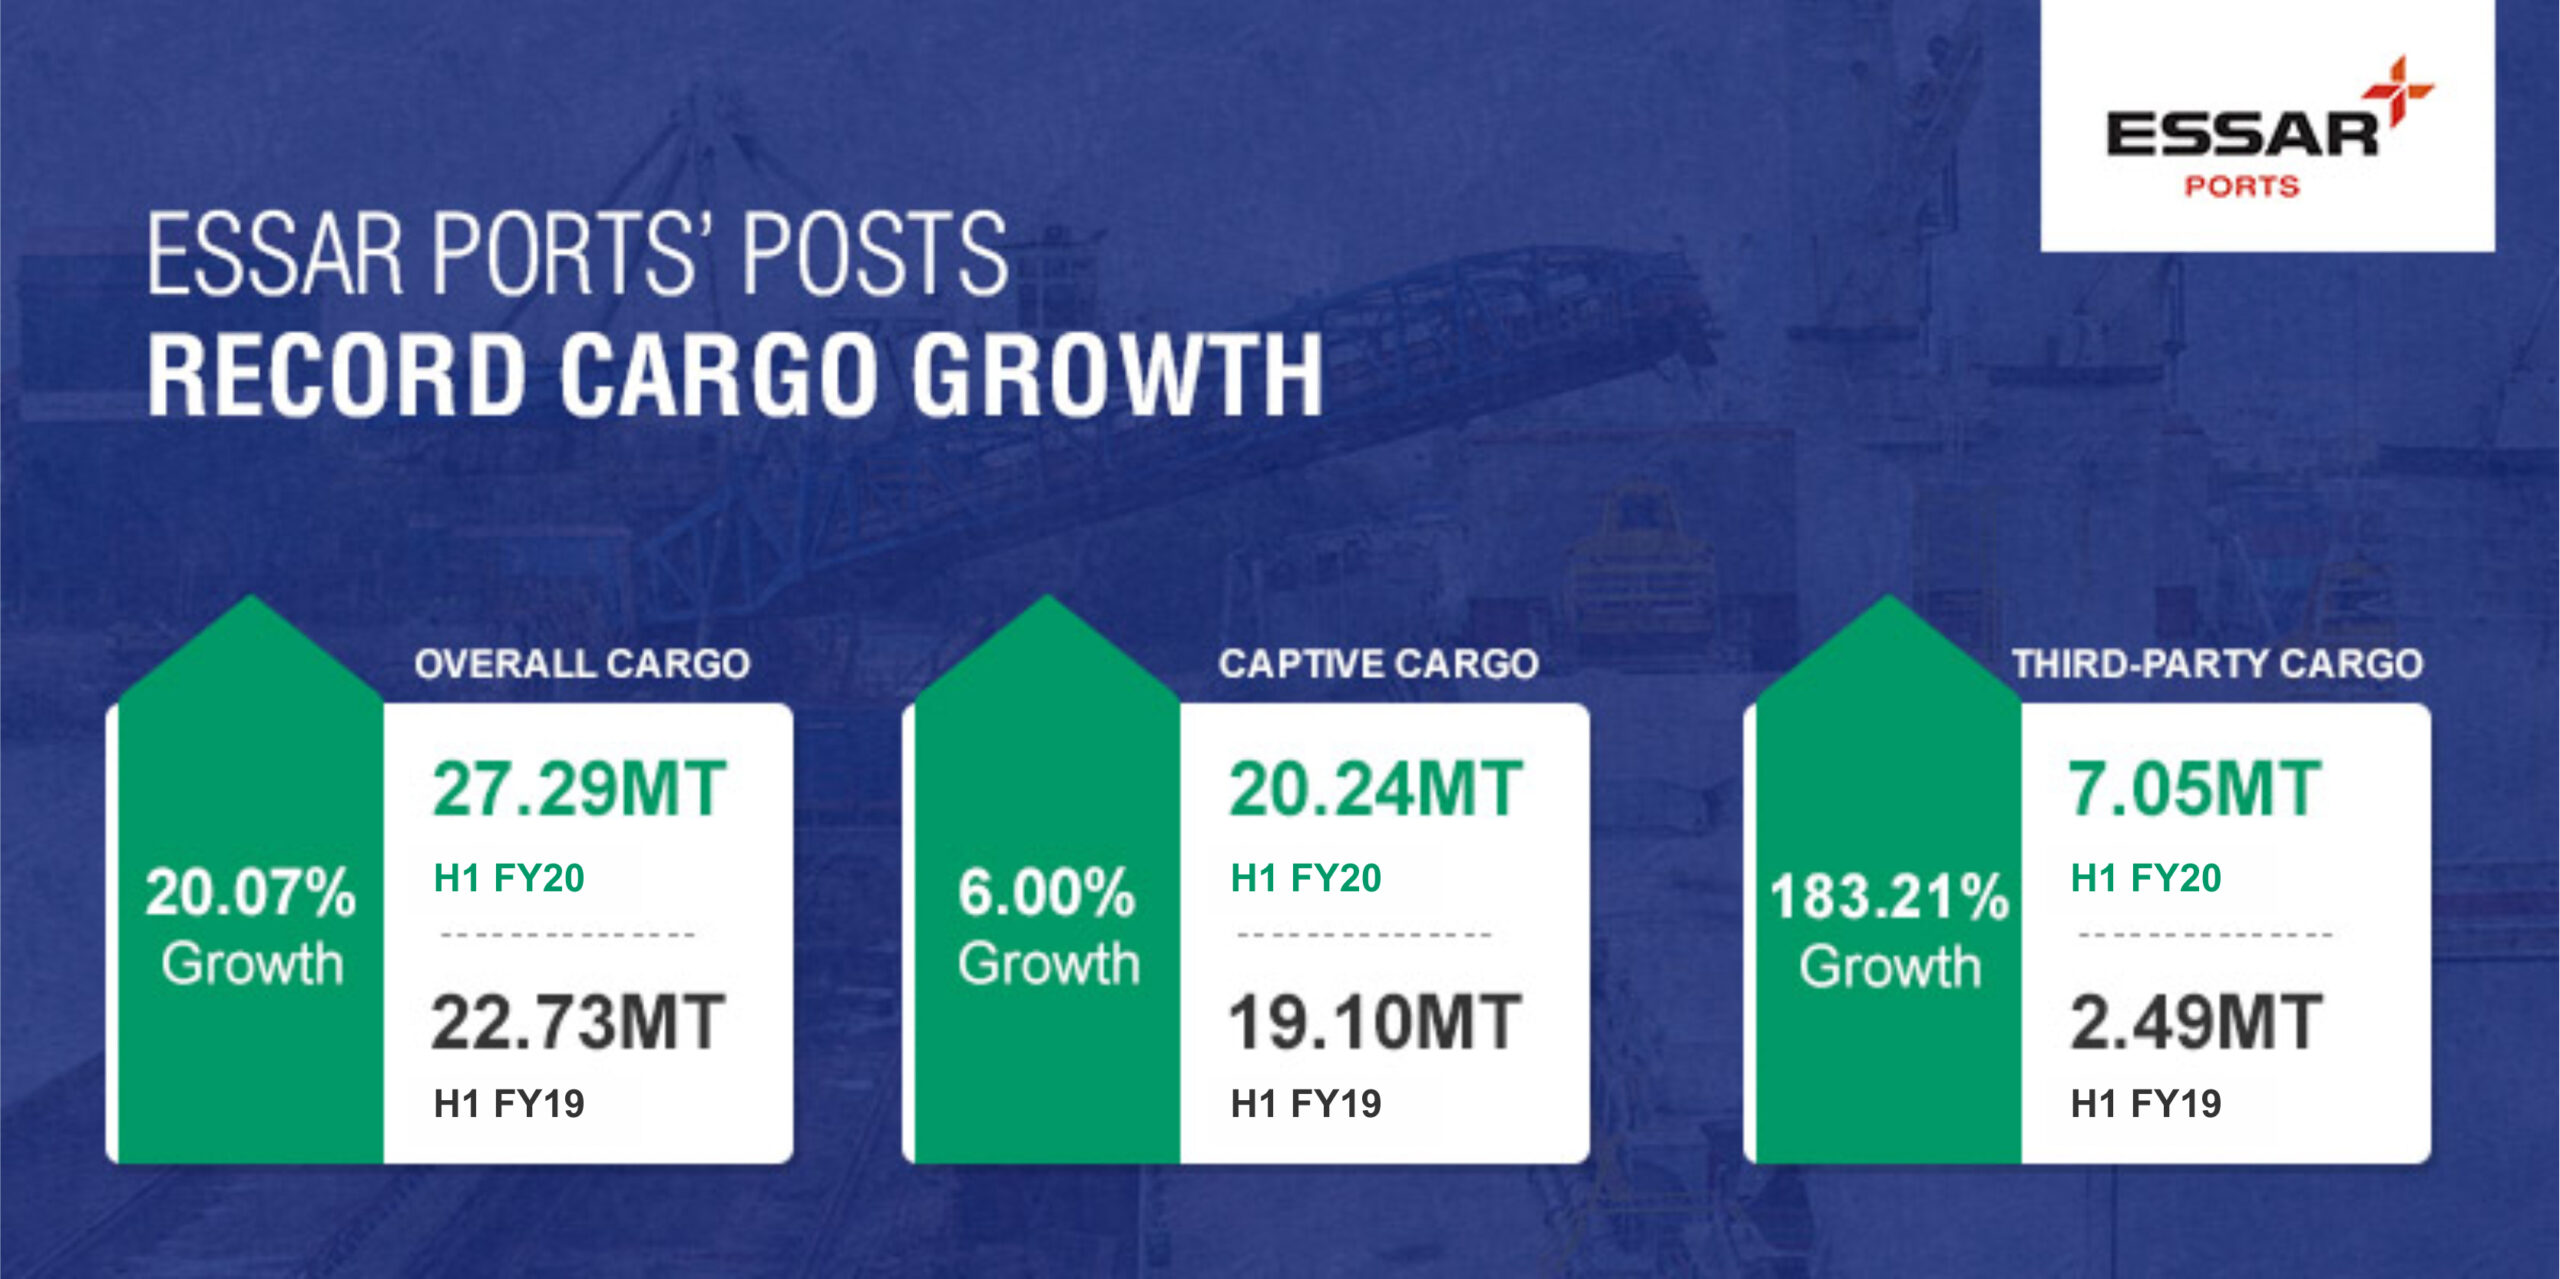 Essar Ports Posts Record Cargo Growth Of 20.07 Percent In H1FY20 5